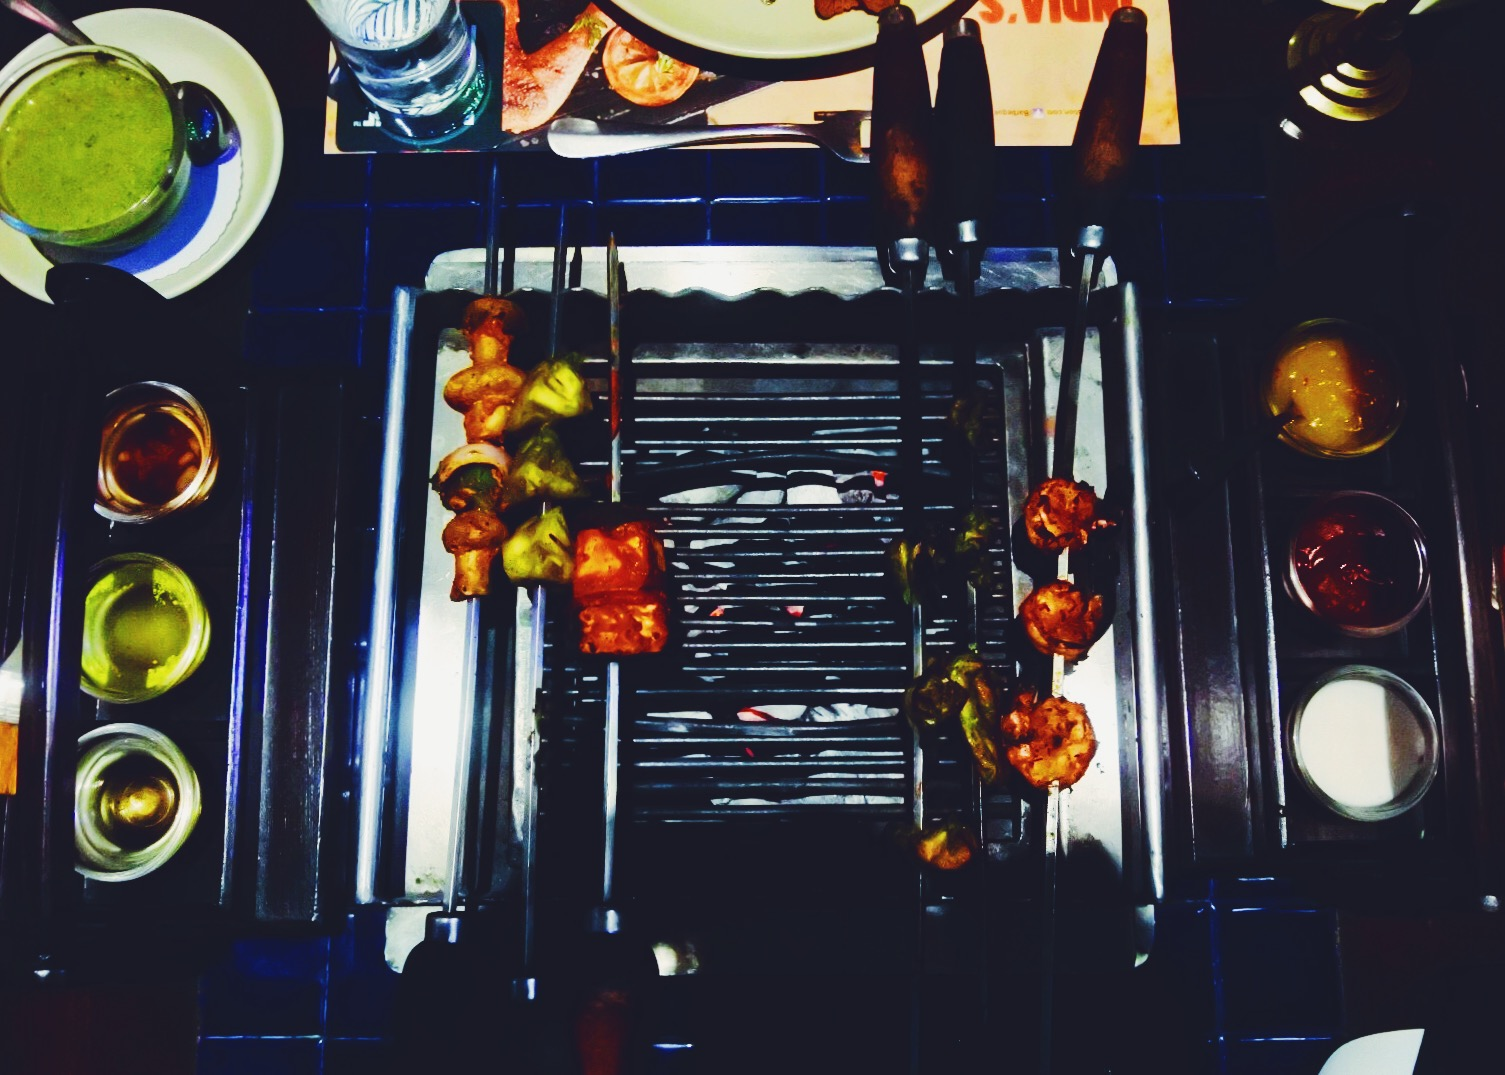 Table-top grilling